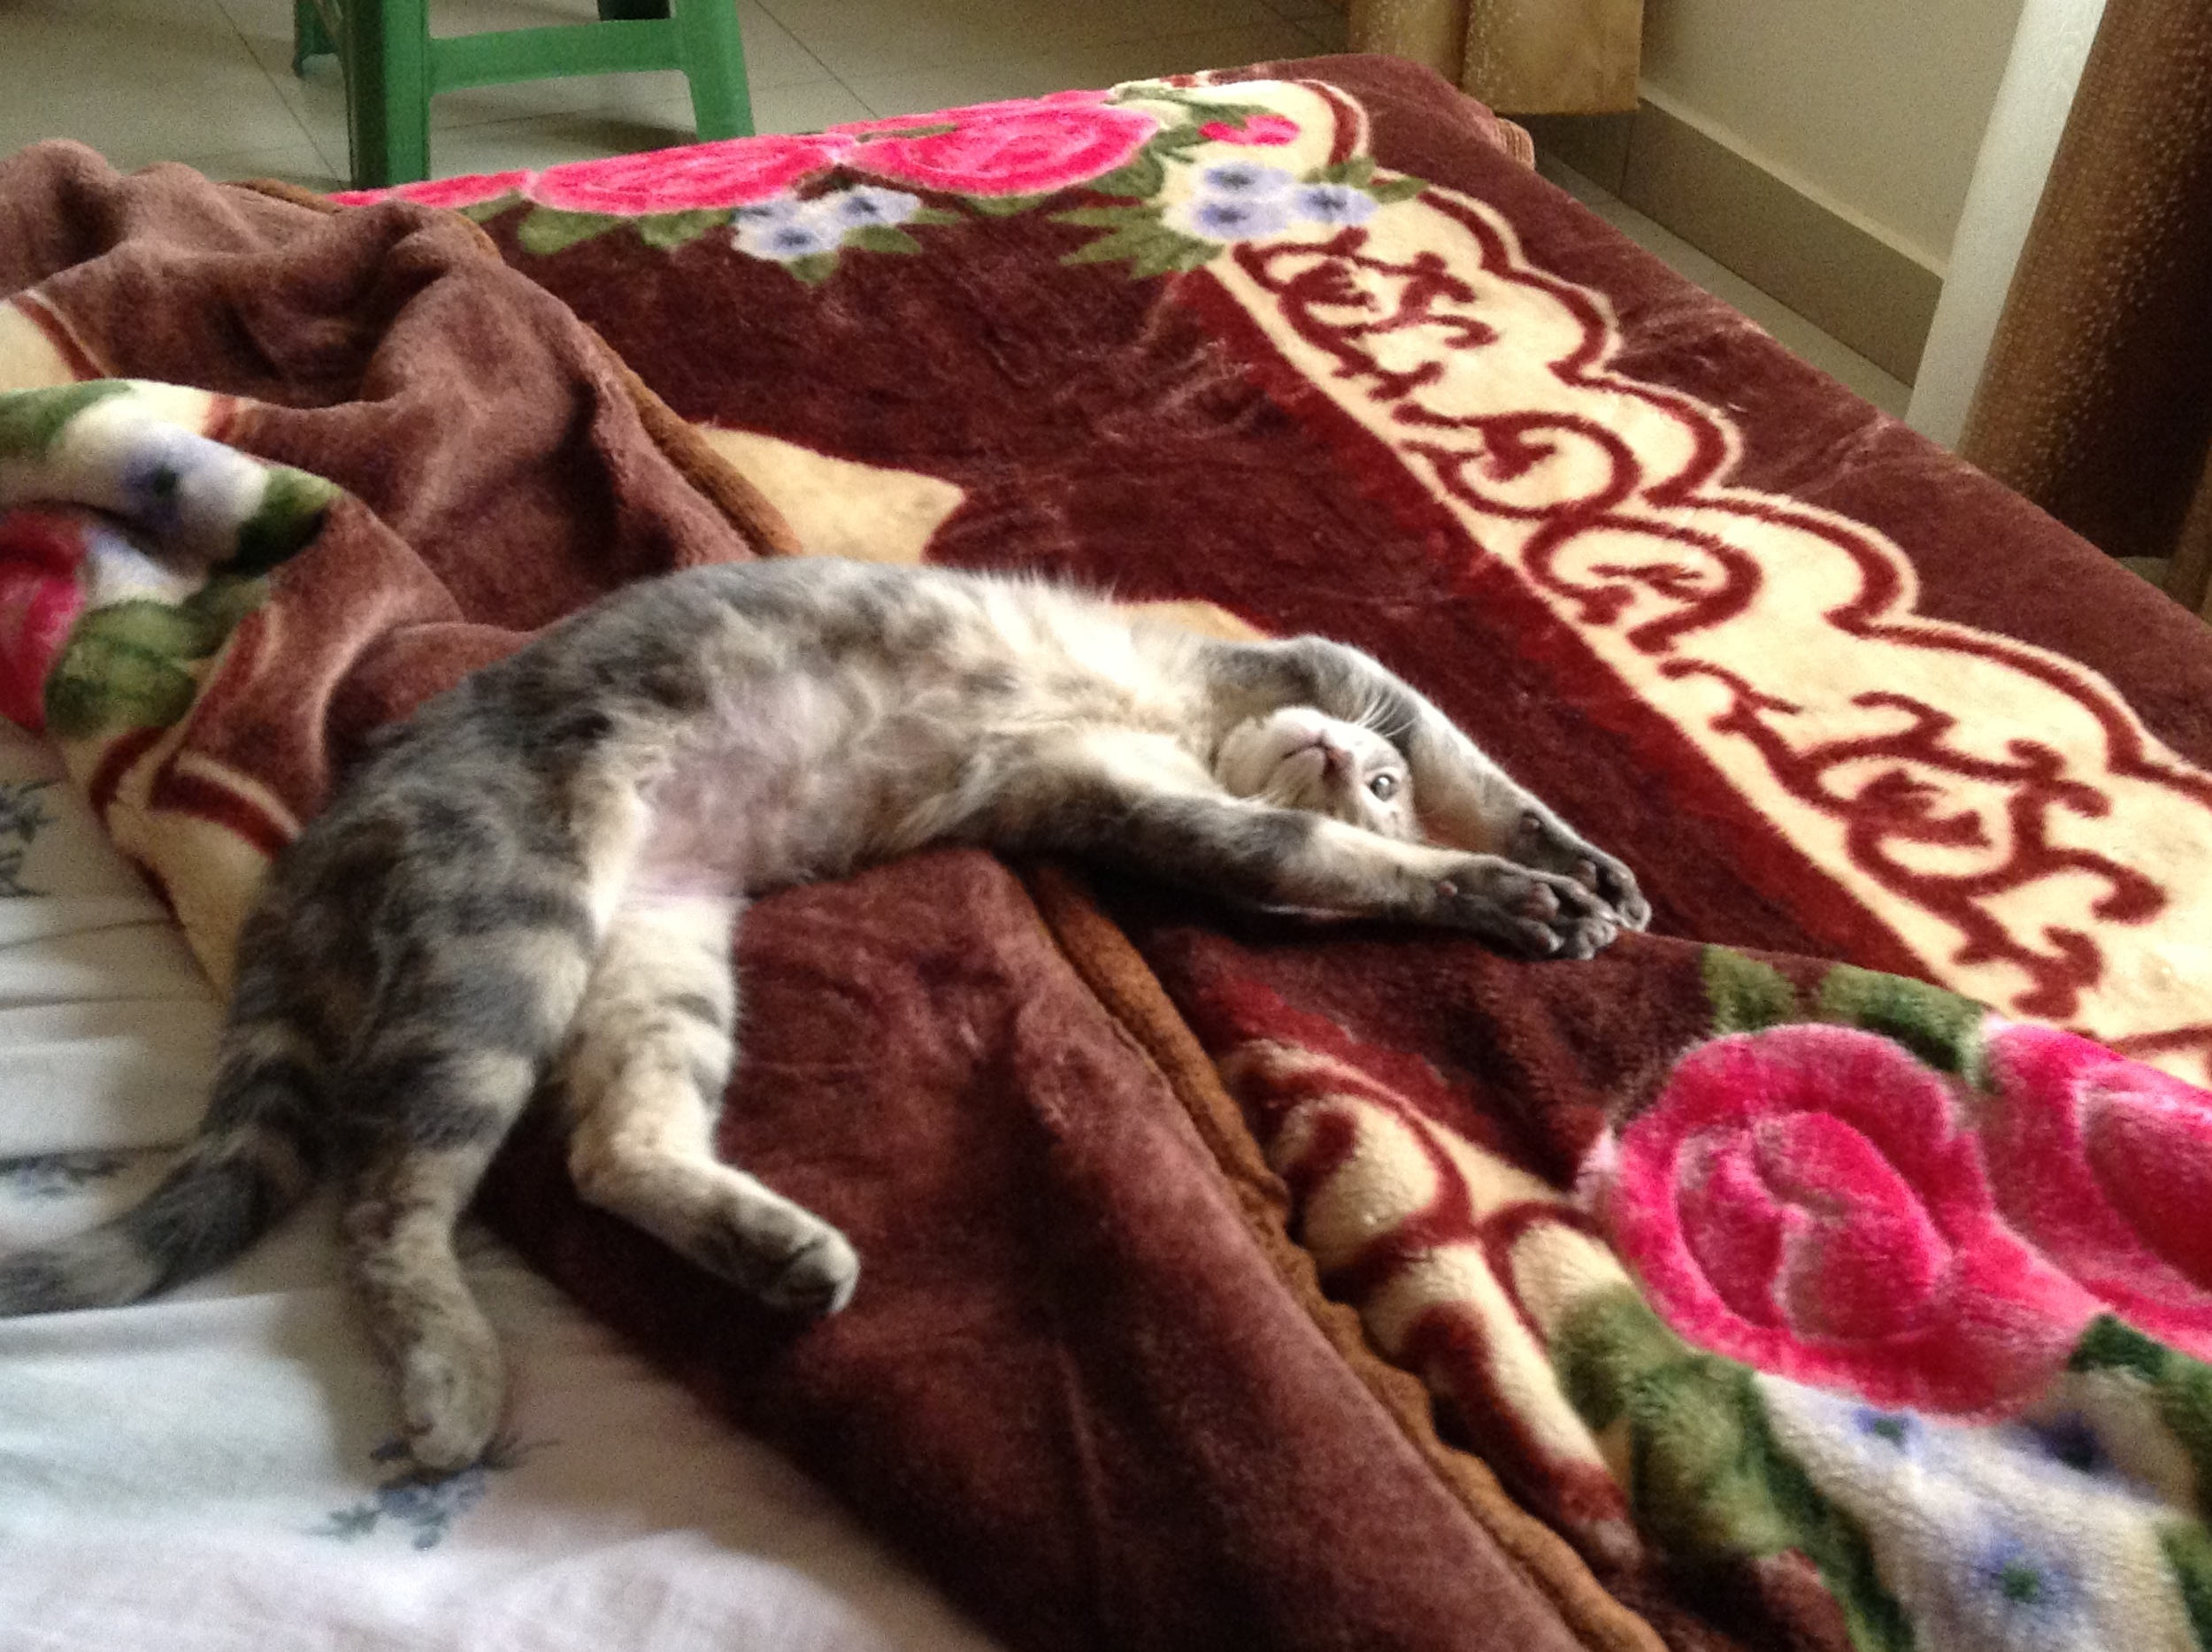 And this is my cat, Sharley. She sleeps in funny positions. Formerly a stray kitten fighting for survival, she now lives in luxury, most likely completely oblivious of the life from whence she came.